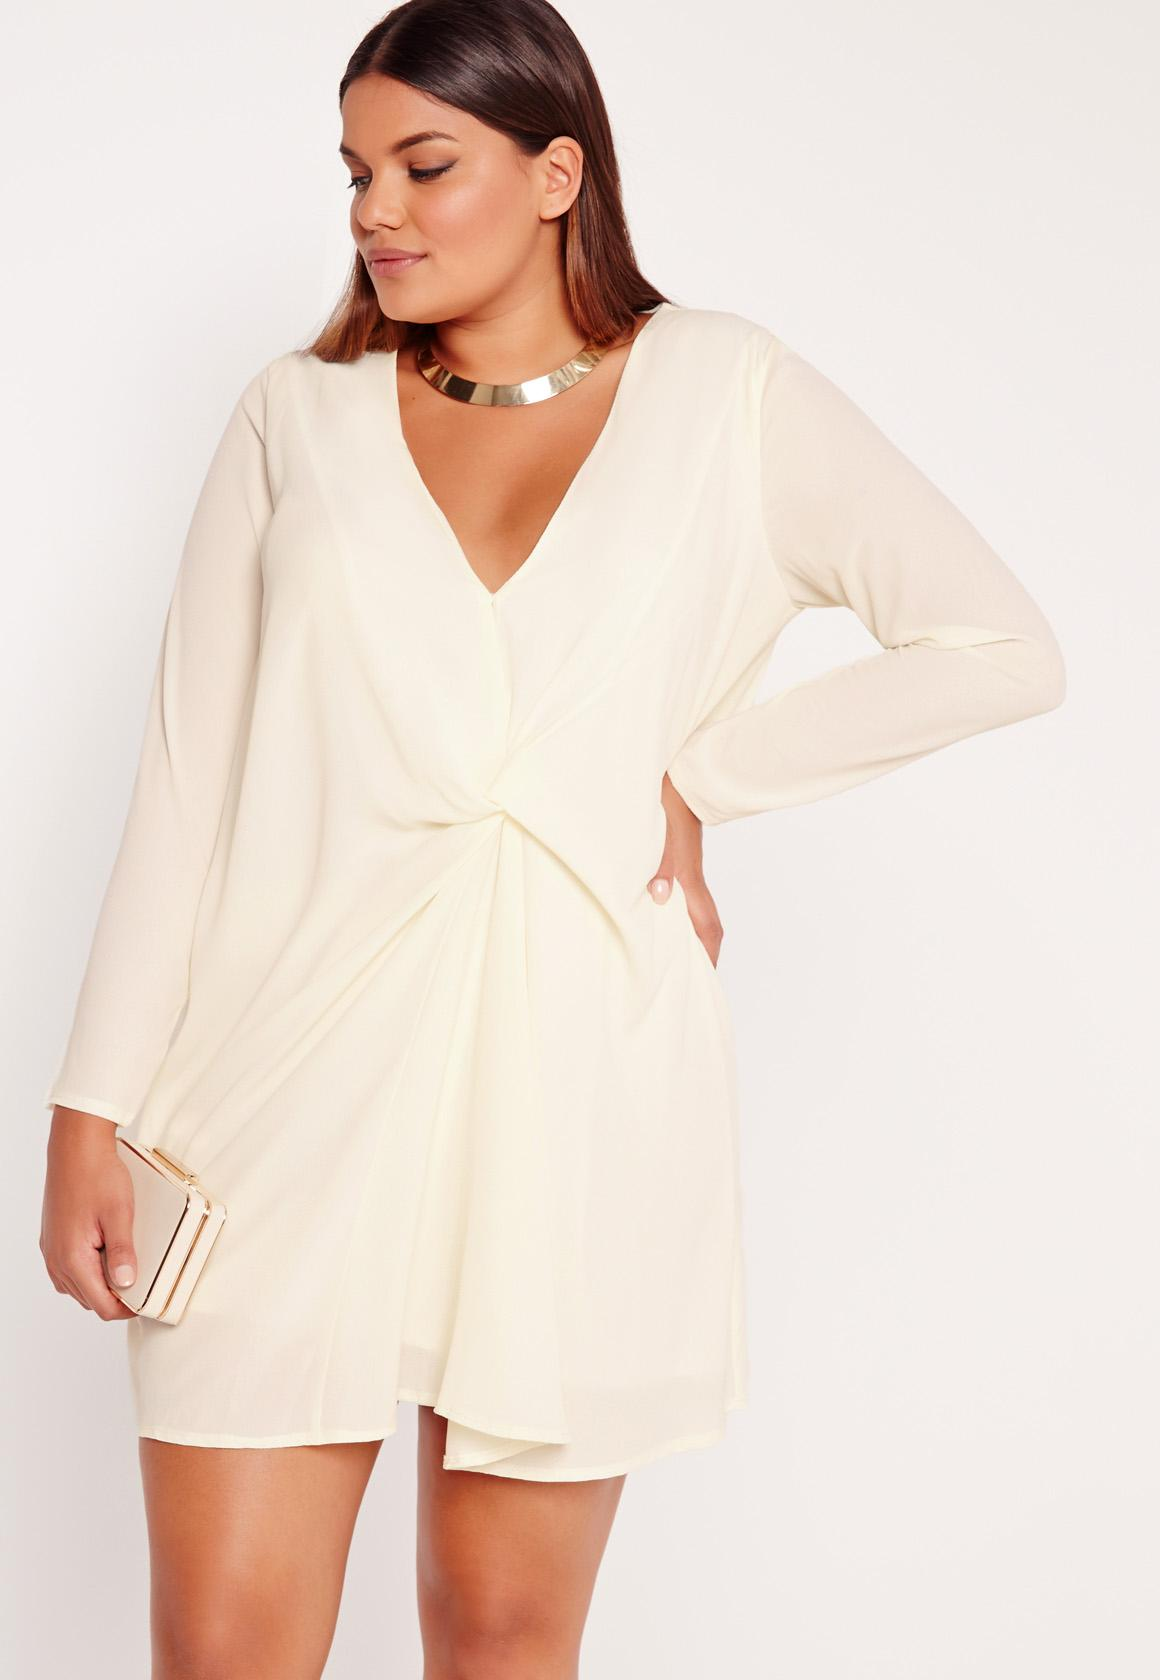 Awesome Cream Plus Size Dress Ideas - Mikejaninesmith.us ...